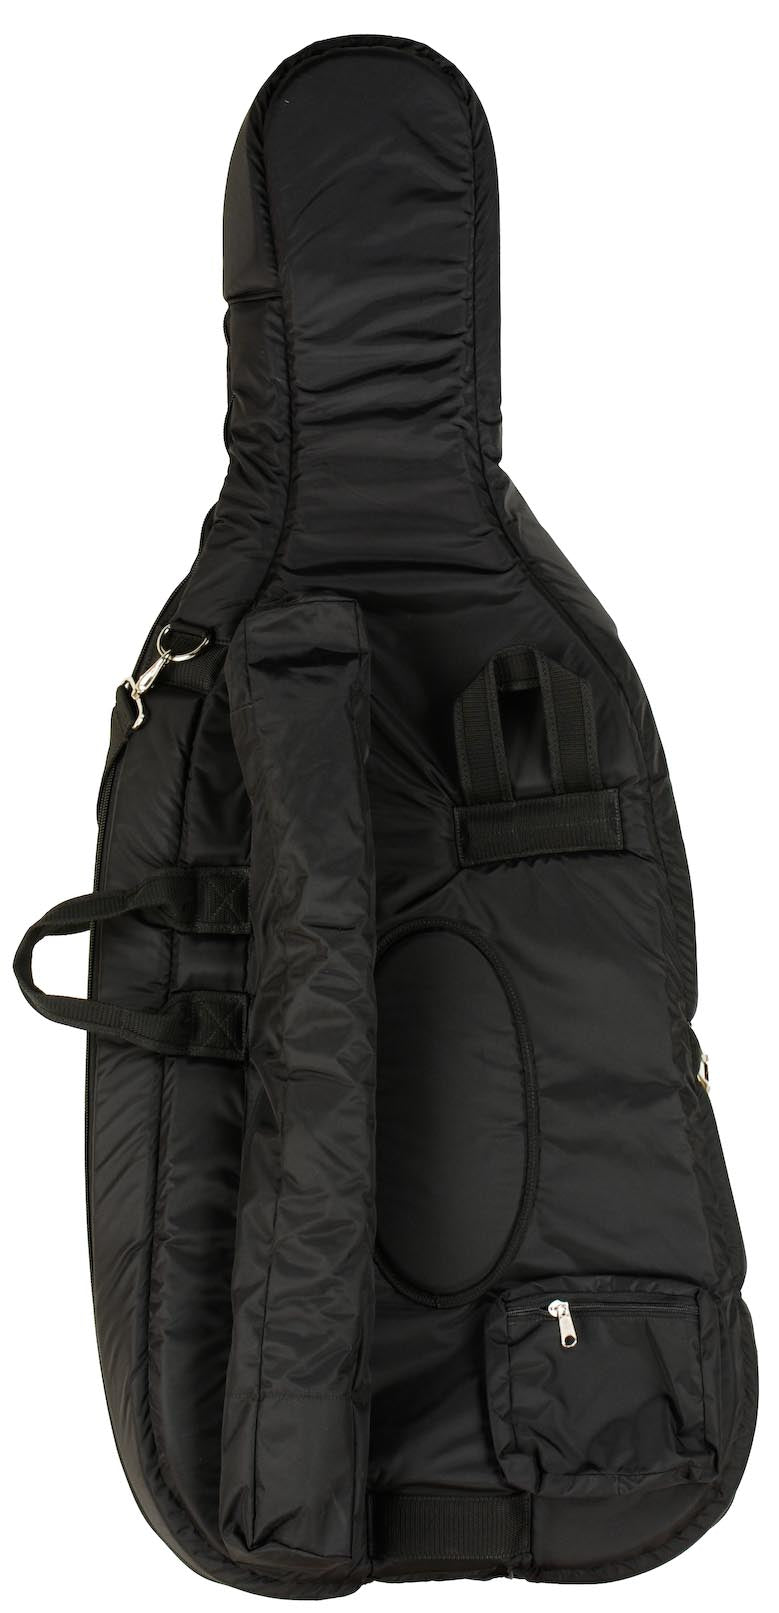 Deluxe Padded Insulated Cello Bag